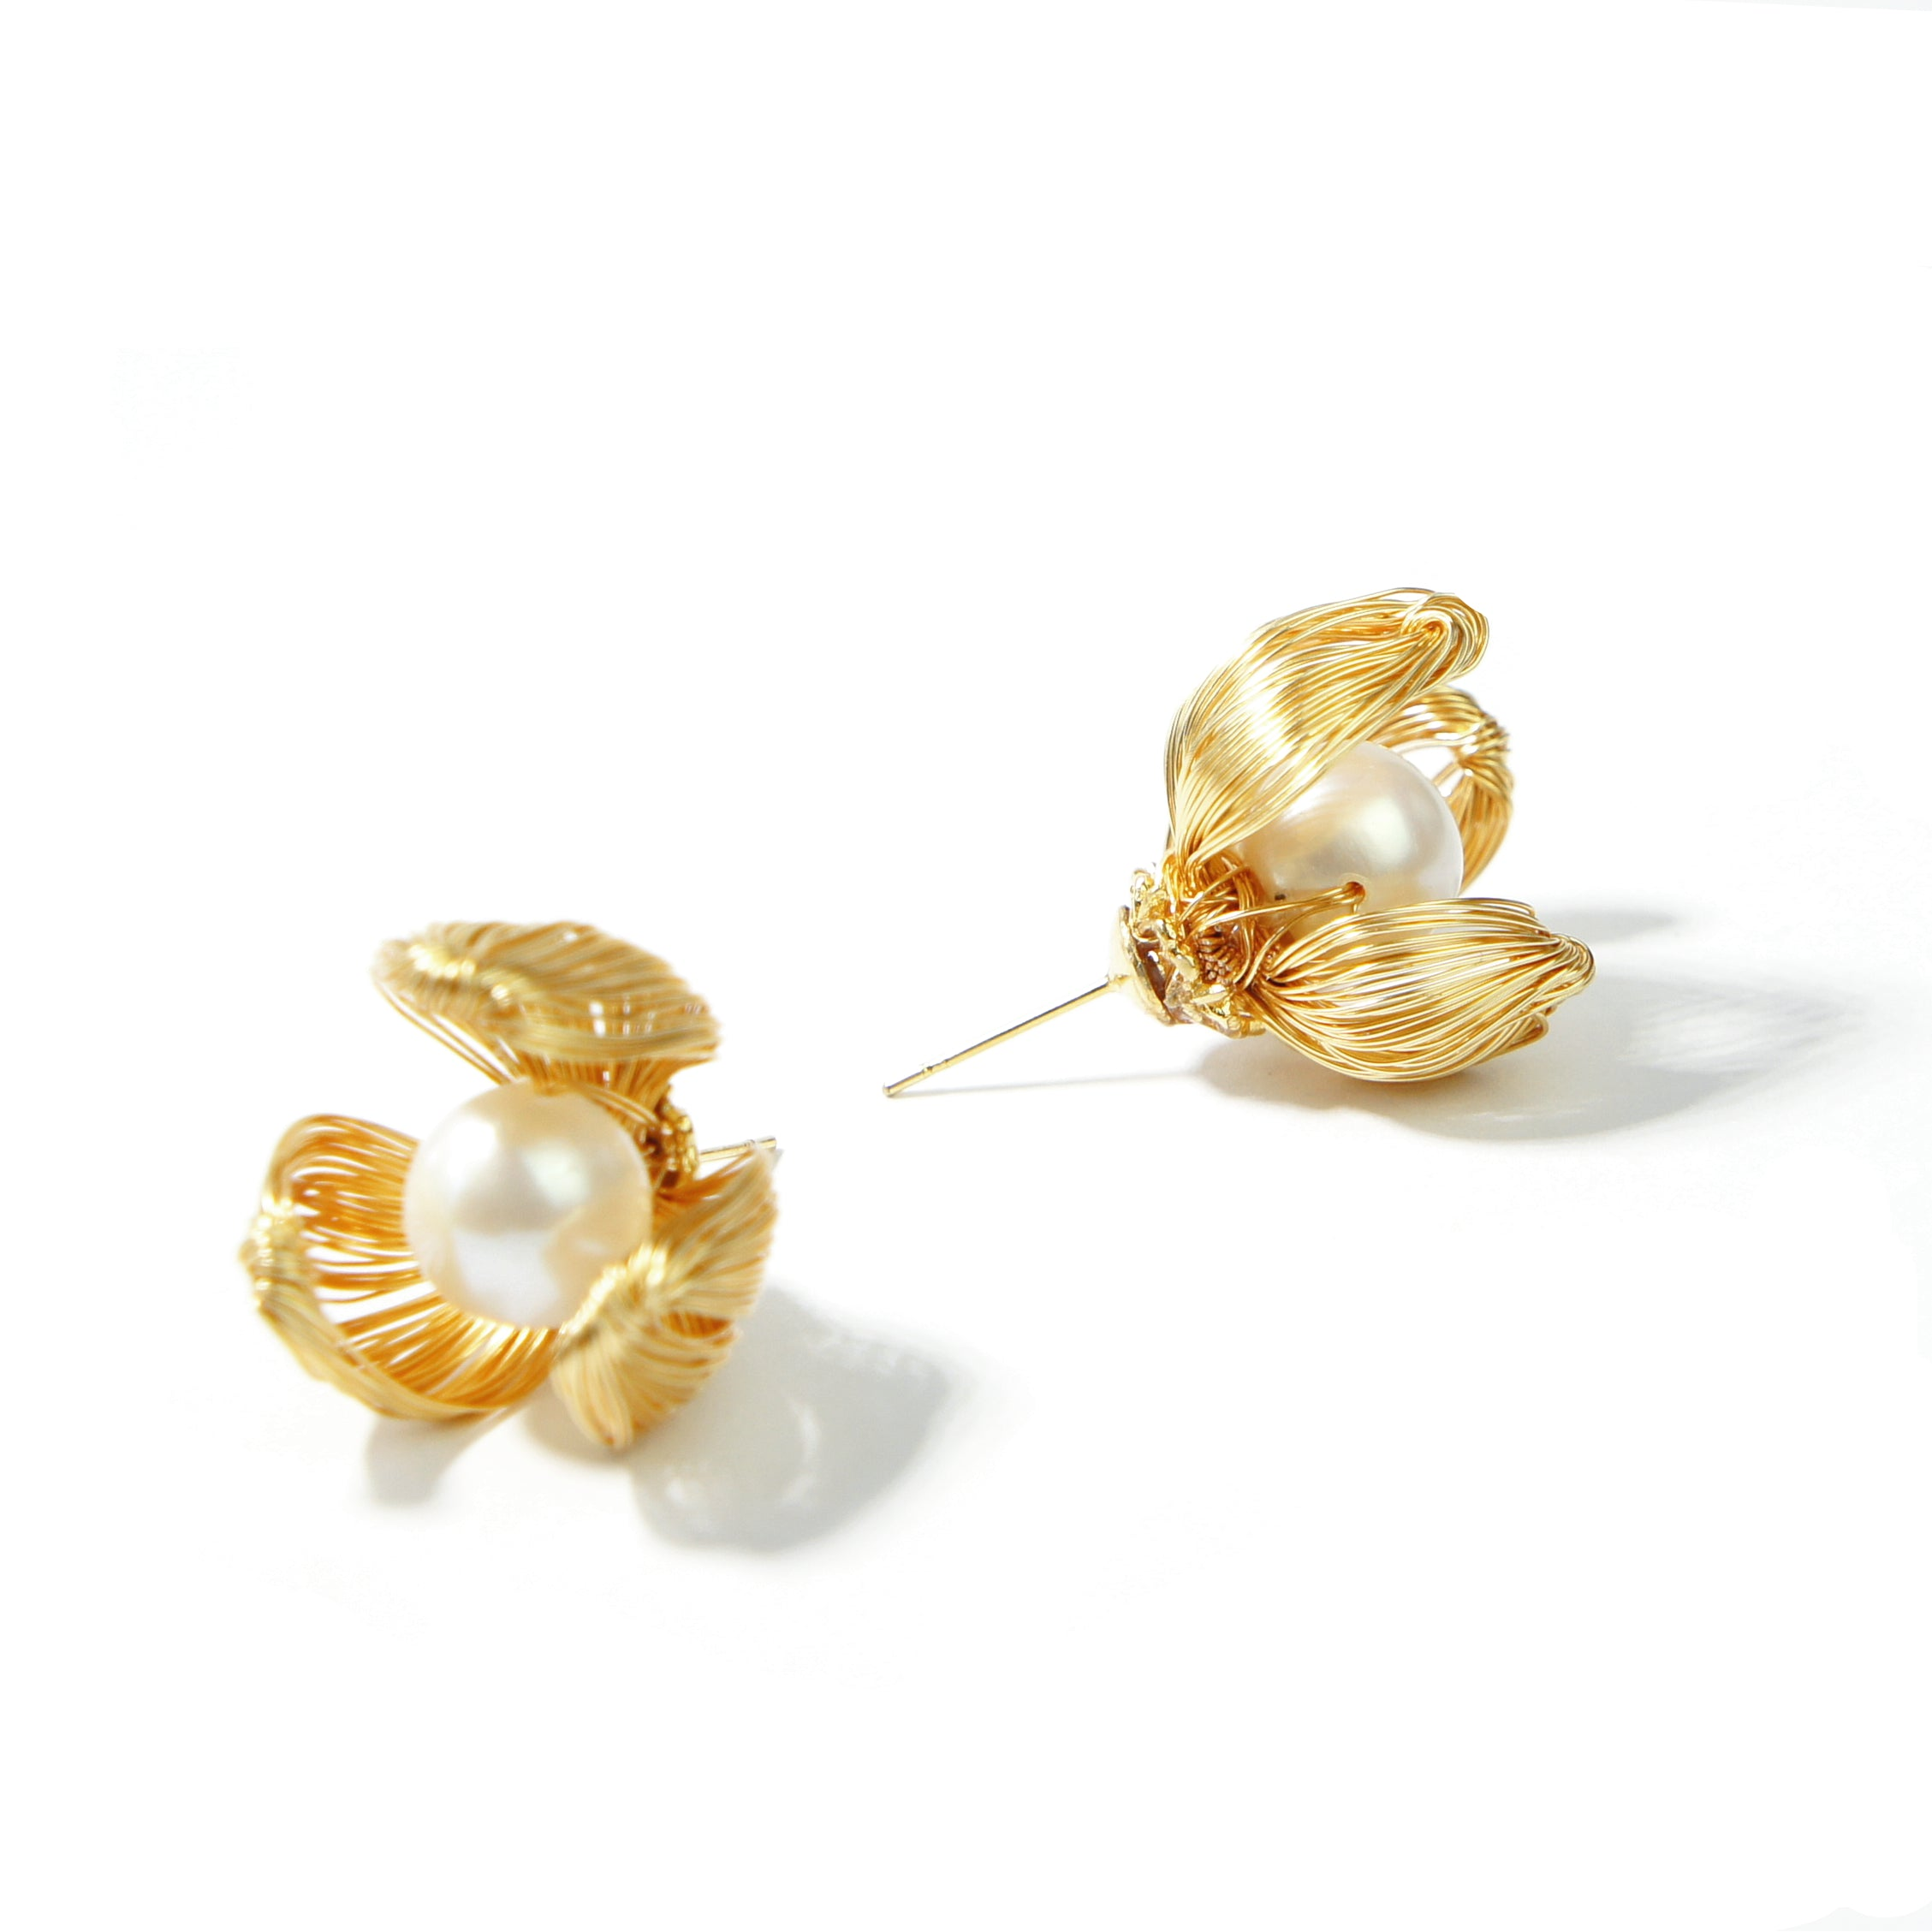 Iris 10mm Freshwater Pearl Studs Earrings